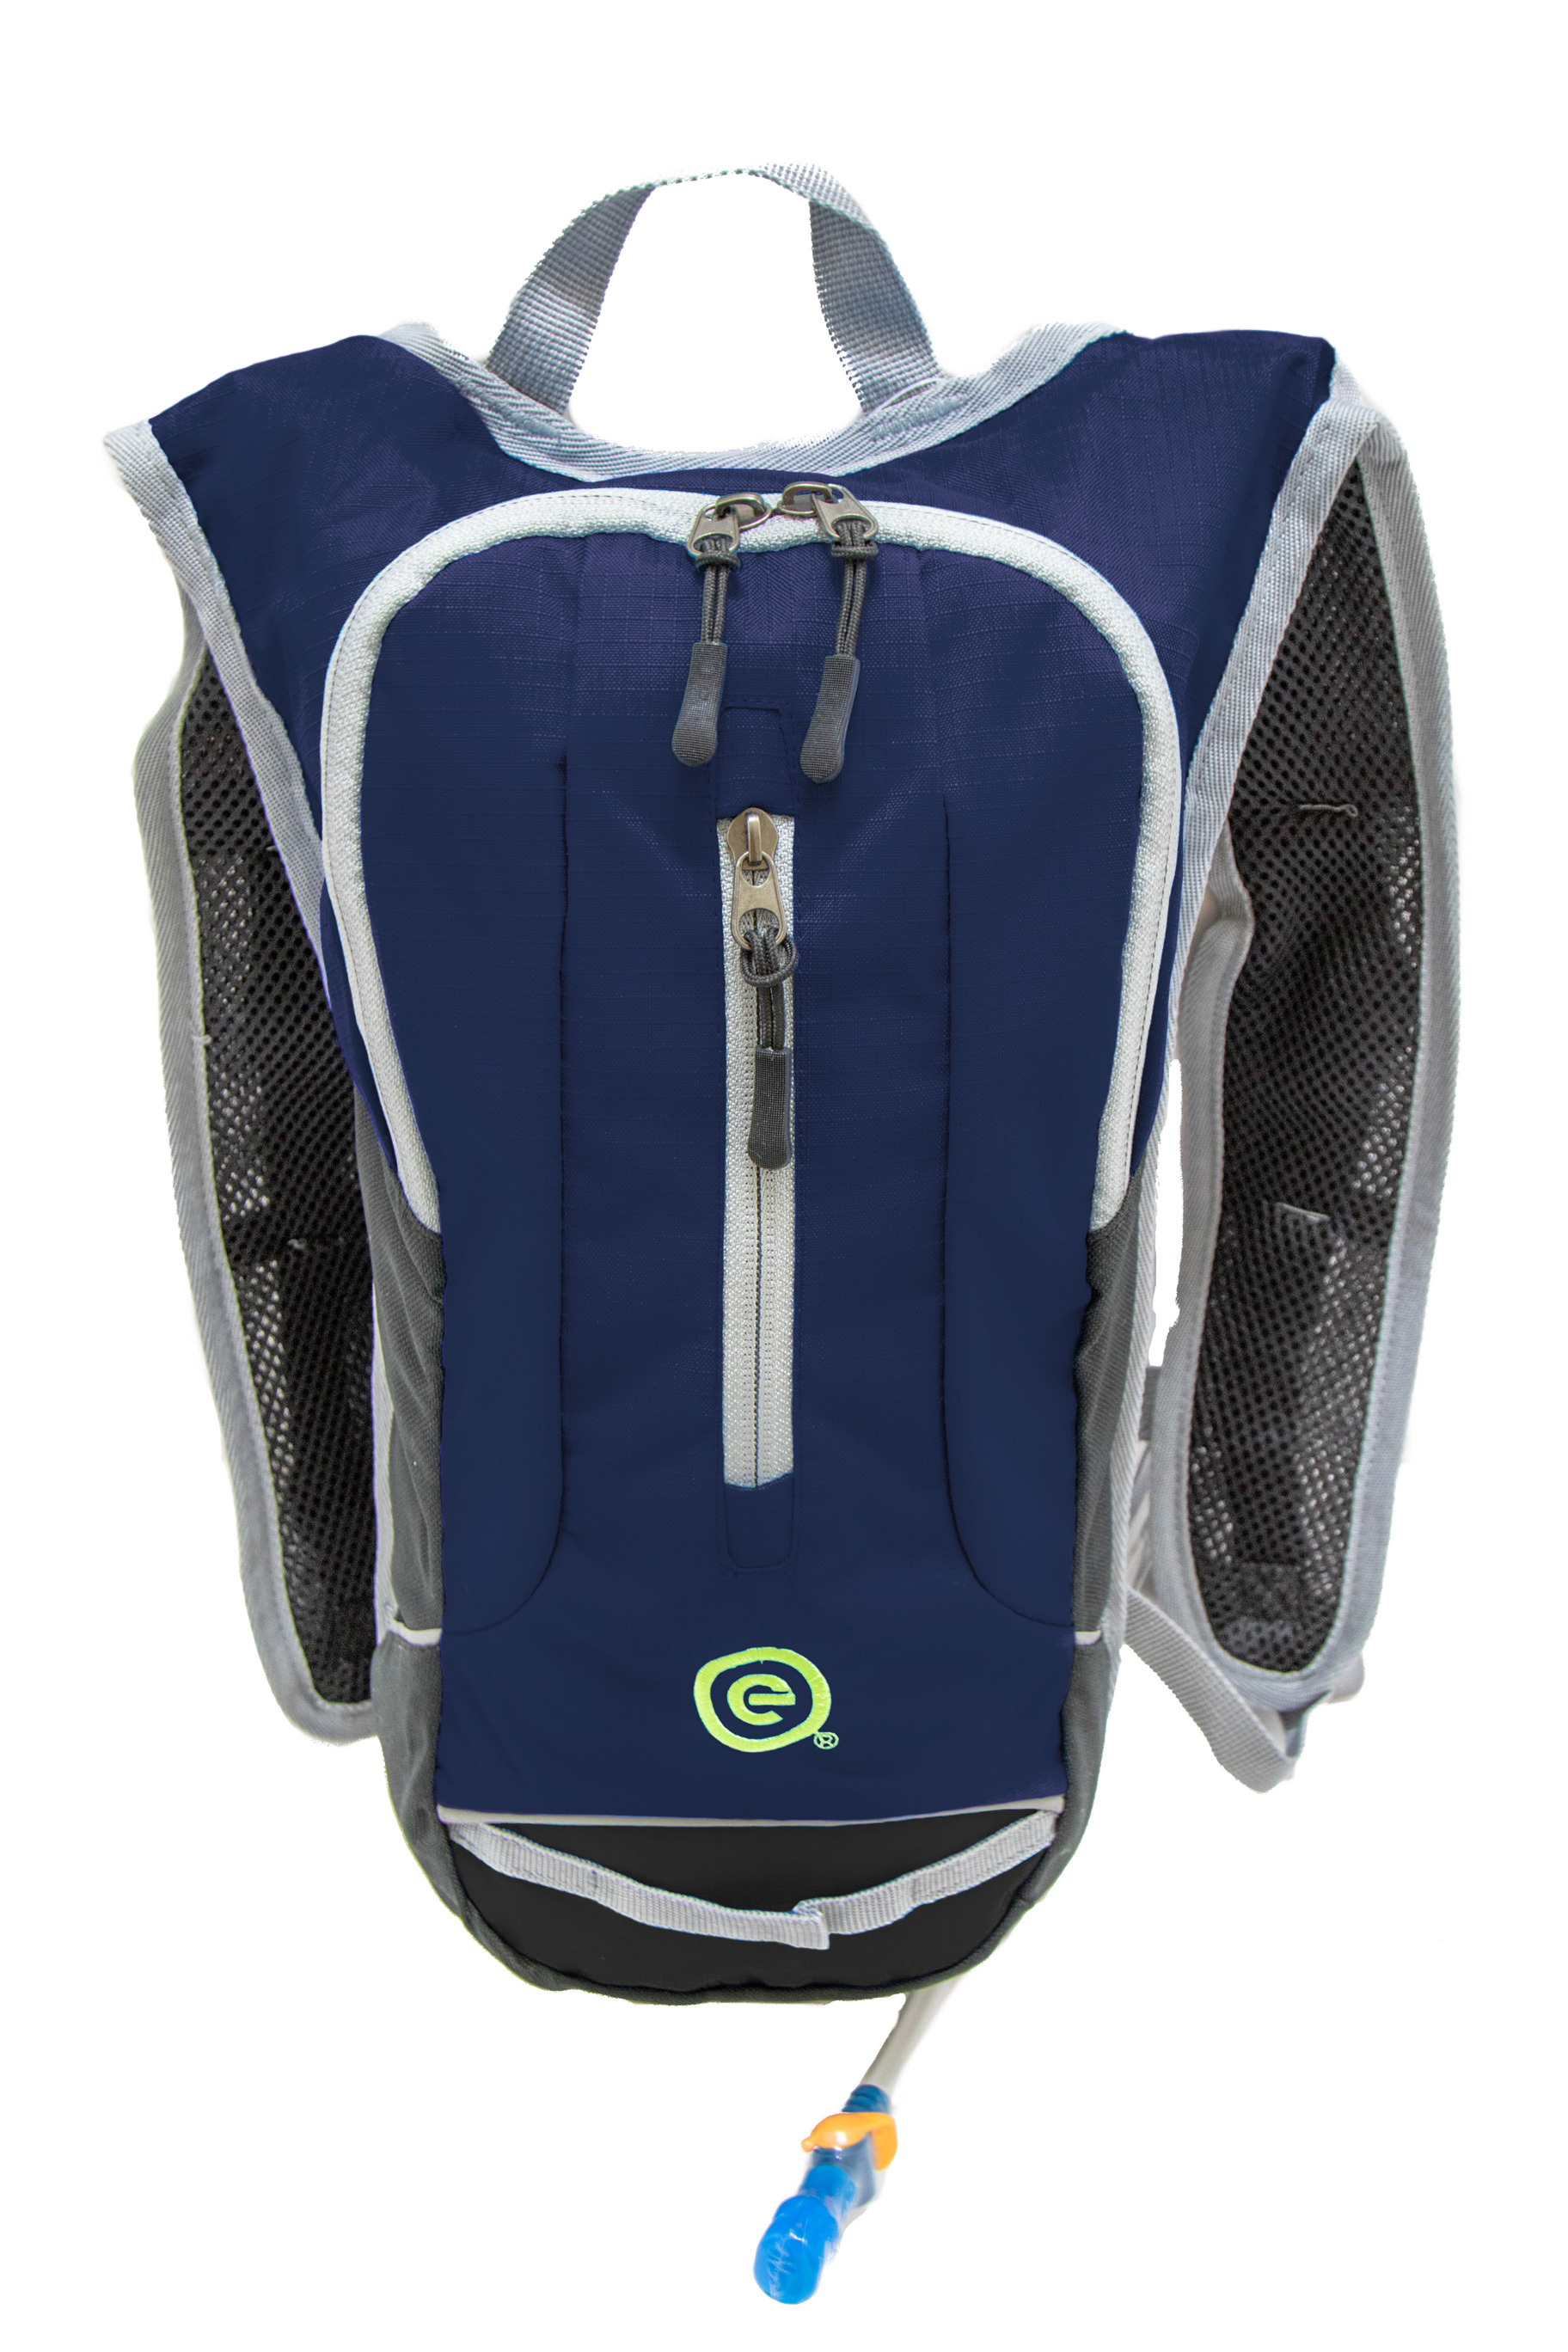 Ecogear Minnow 1.5L Hydration Pack by ecogear & ecotech